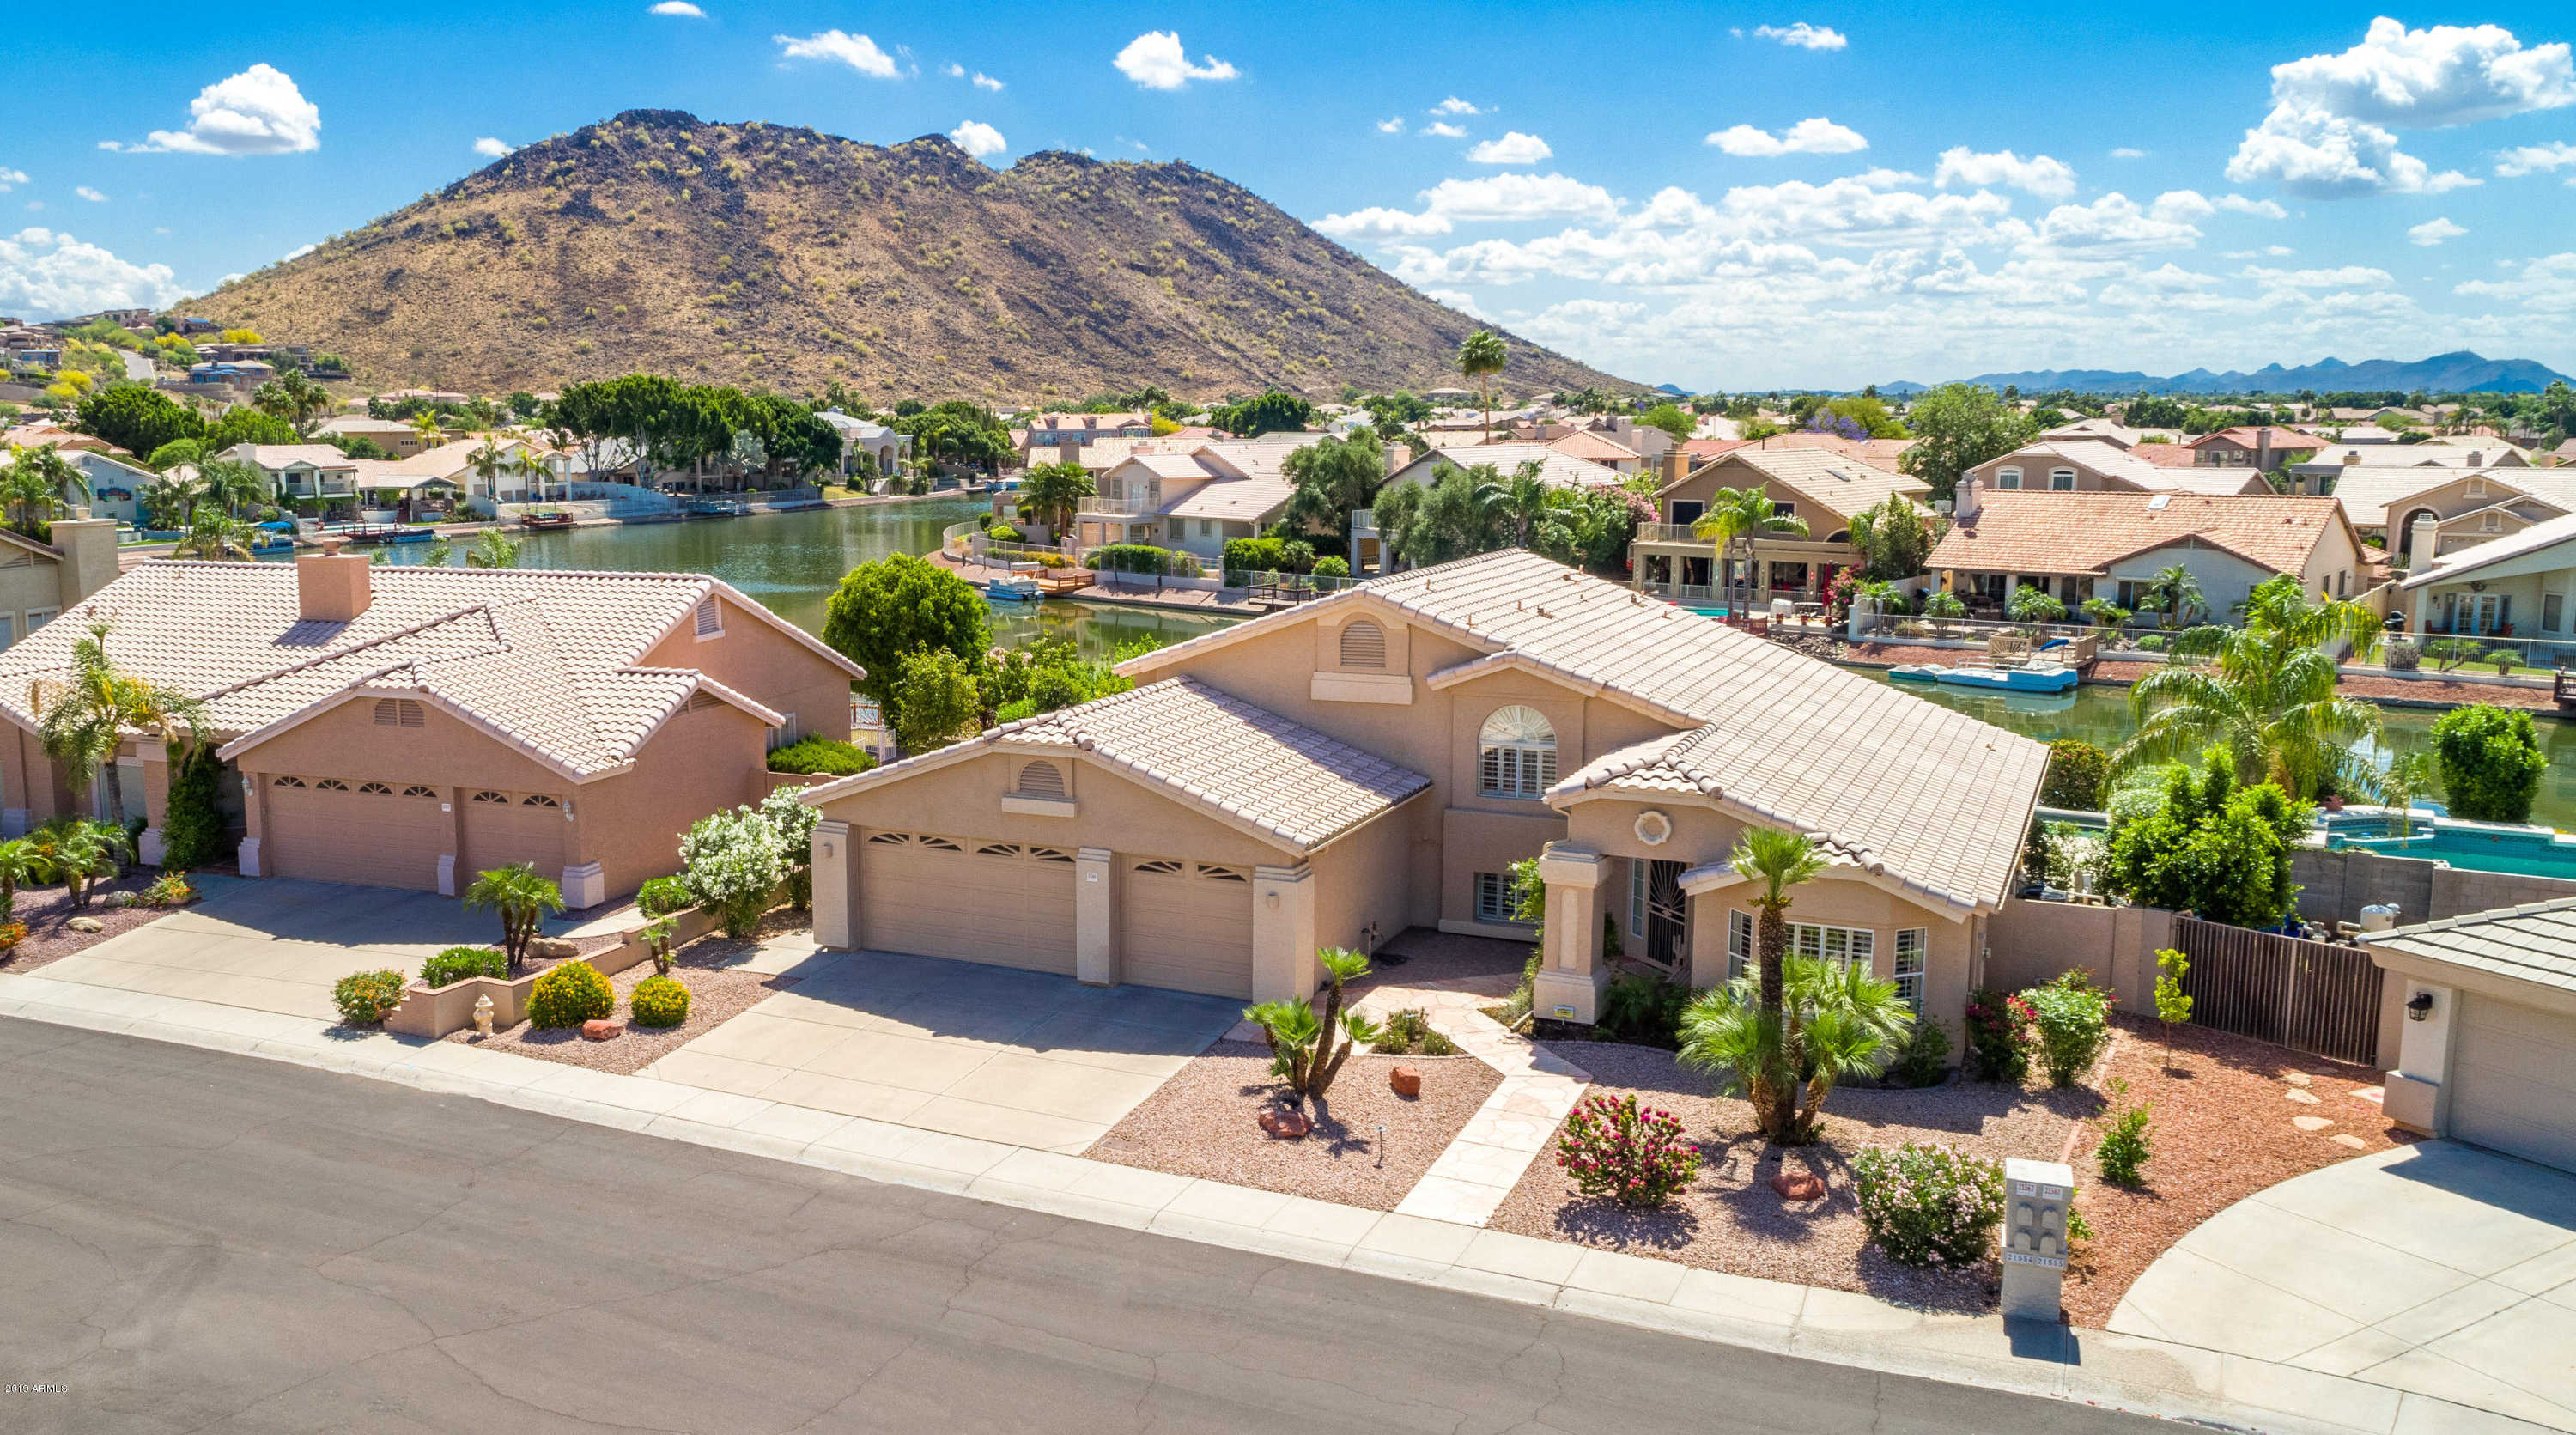 $585,000 - 5Br/3Ba - Home for Sale in Arrowhead Lakes Unit 4 Lot 1-59 Tr A, Glendale